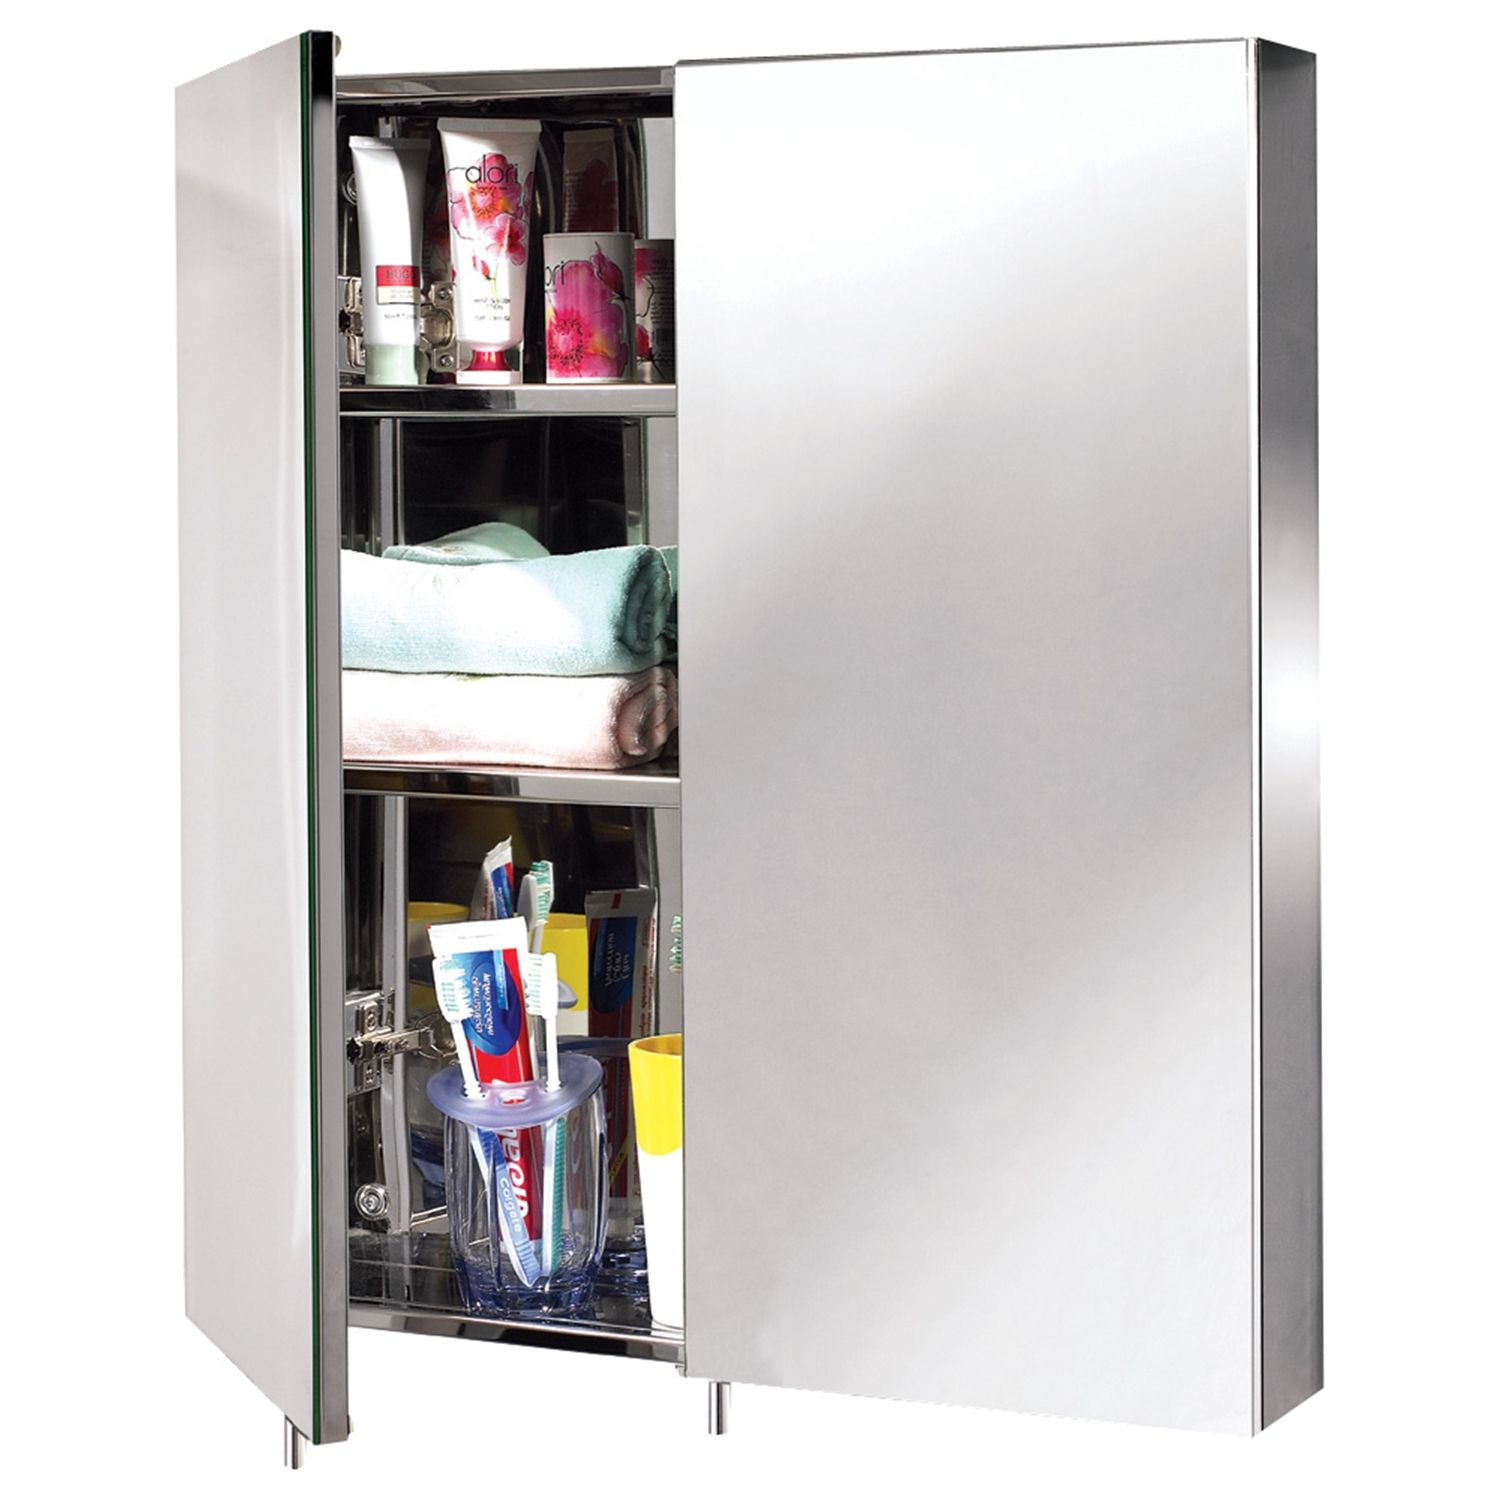 2 Door Mirrored Cabinet Stainless Steel 60x67x12: Two door bathroom ...